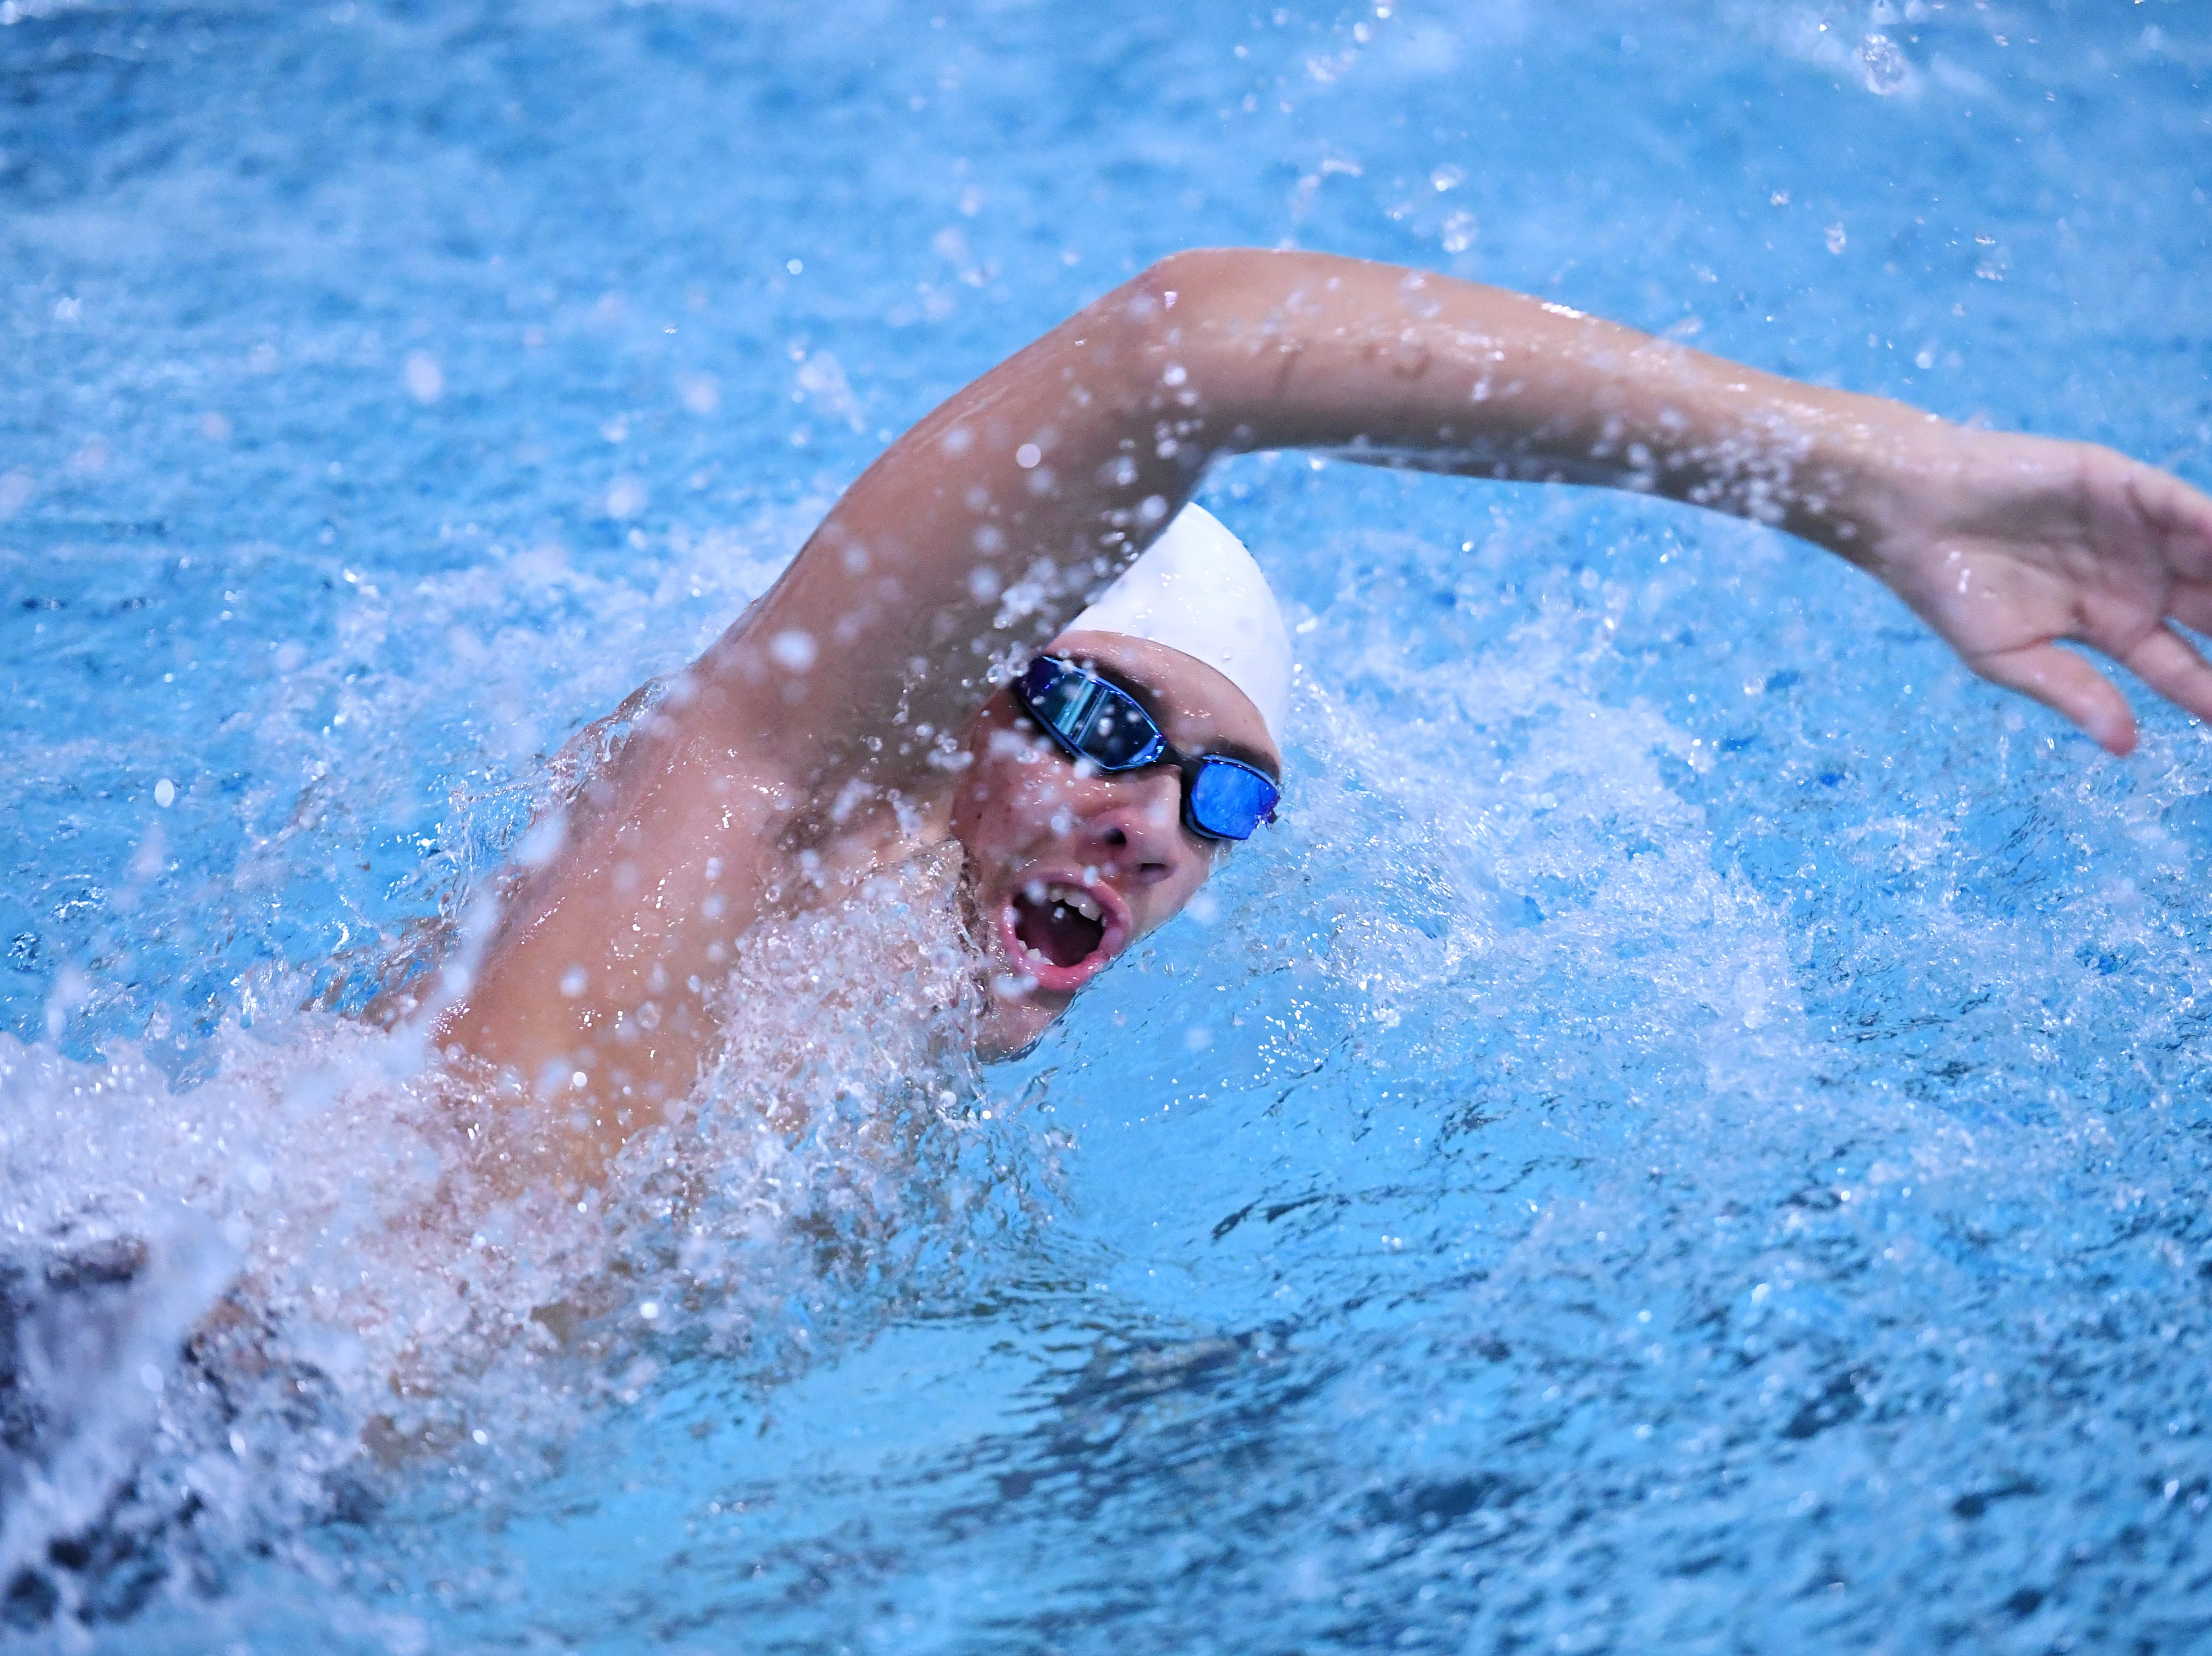 Morris County Swimming Championships at Morristown High School on Saturday, January 26, 2019. Andrew Gaston of Delbarton in the Boys 400 SC Meter Freestyle.